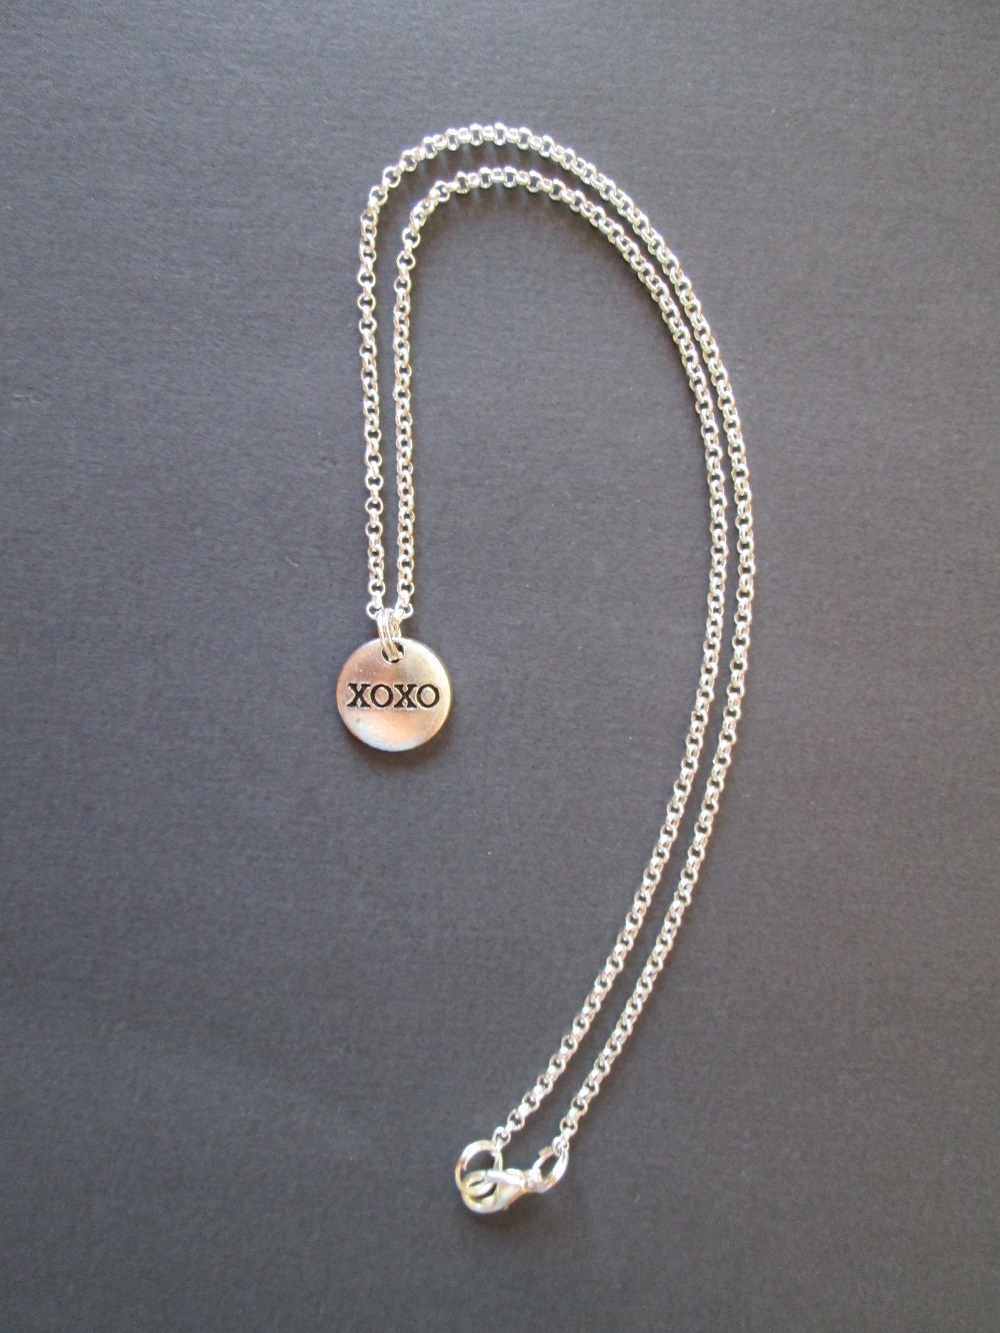 Silver XOXO Friendship Necklace Choker Length With XOXO Hugs and Kisses Charm